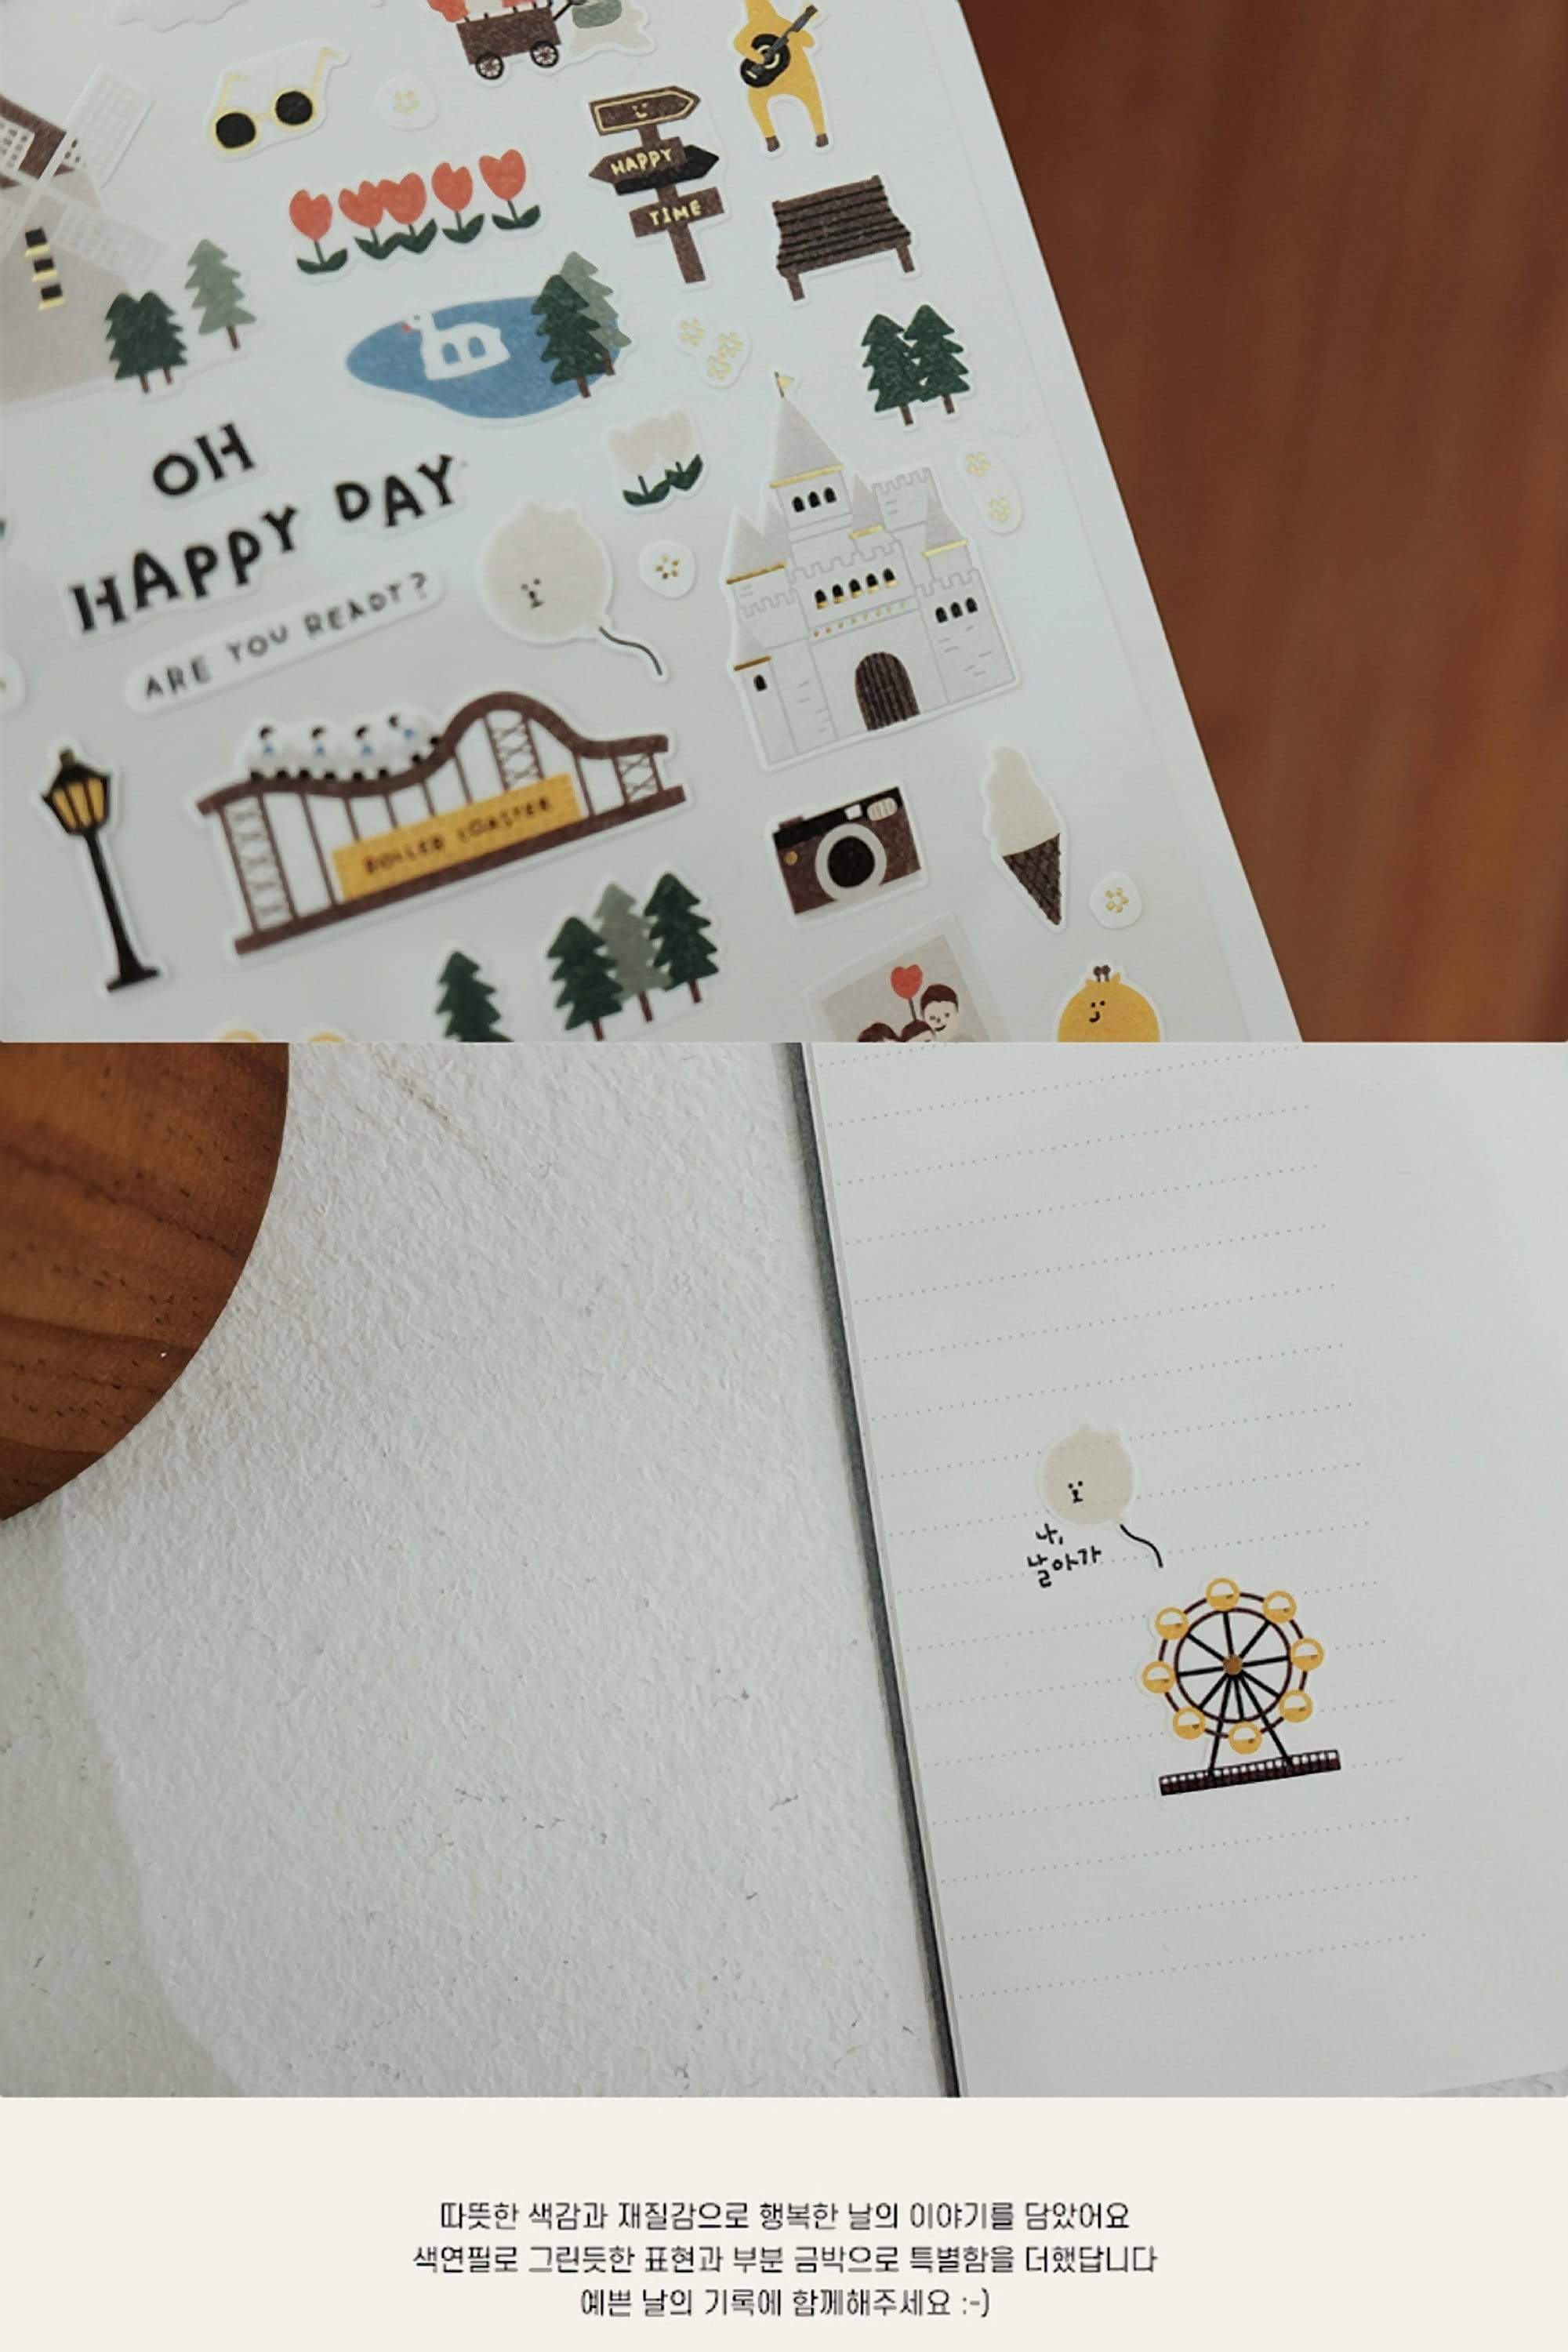 Suatelier Sonia PVC Transparent Stickers 1106 | Oh Happy Day Rollercoaster Ferris Wheel Day Trip - The Stationery Life!